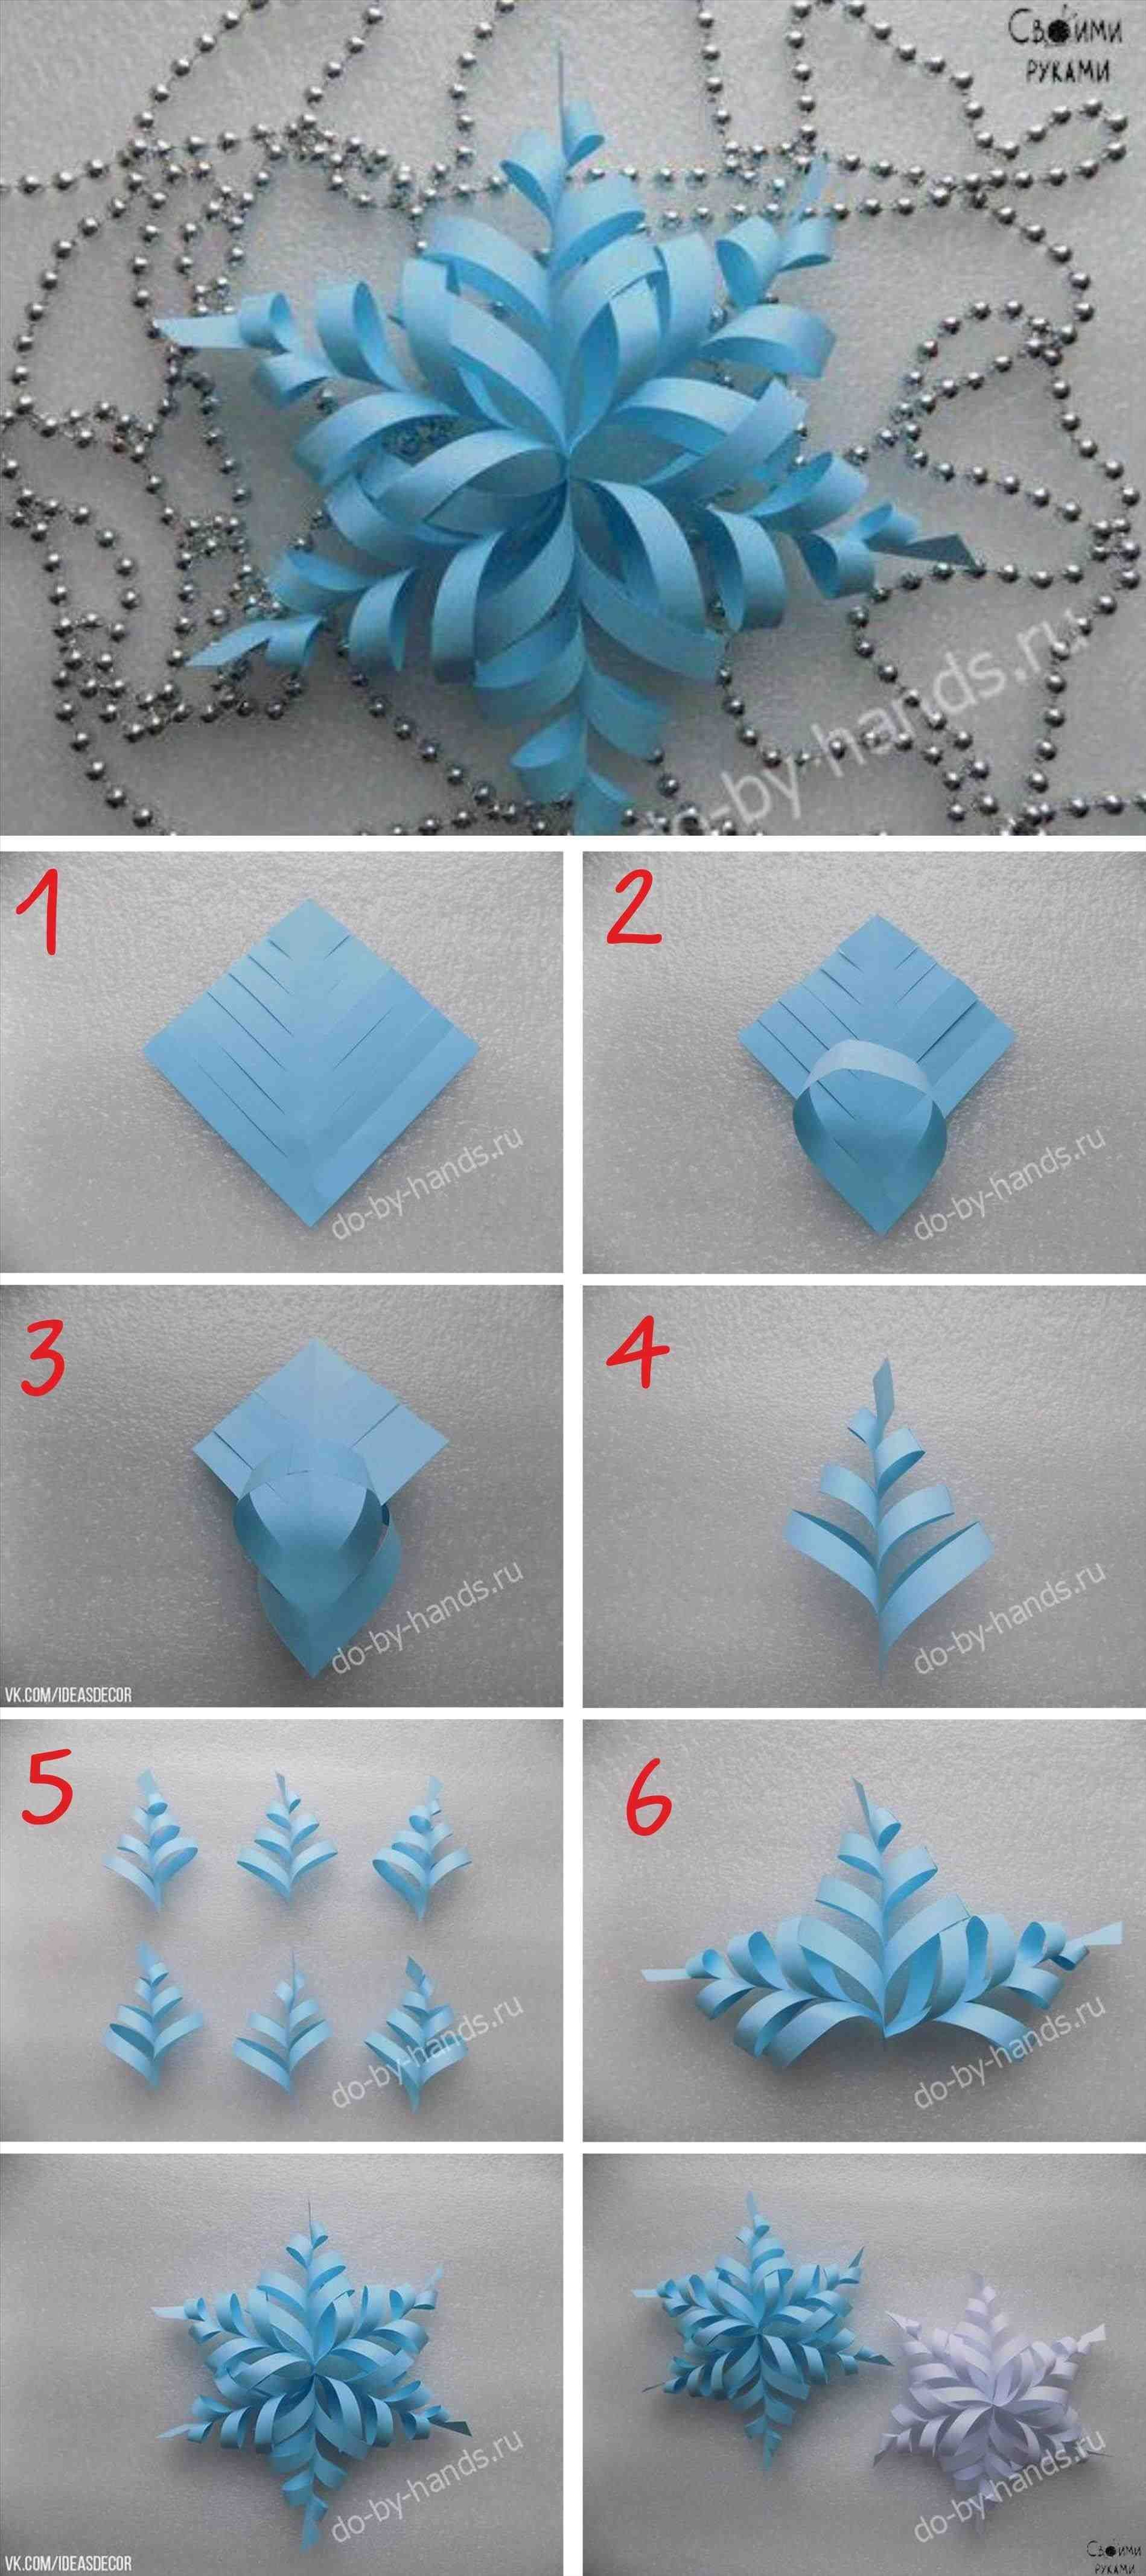 47 Home Decor Ideas With Paper Paper Crafts Diy Xmas Crafts